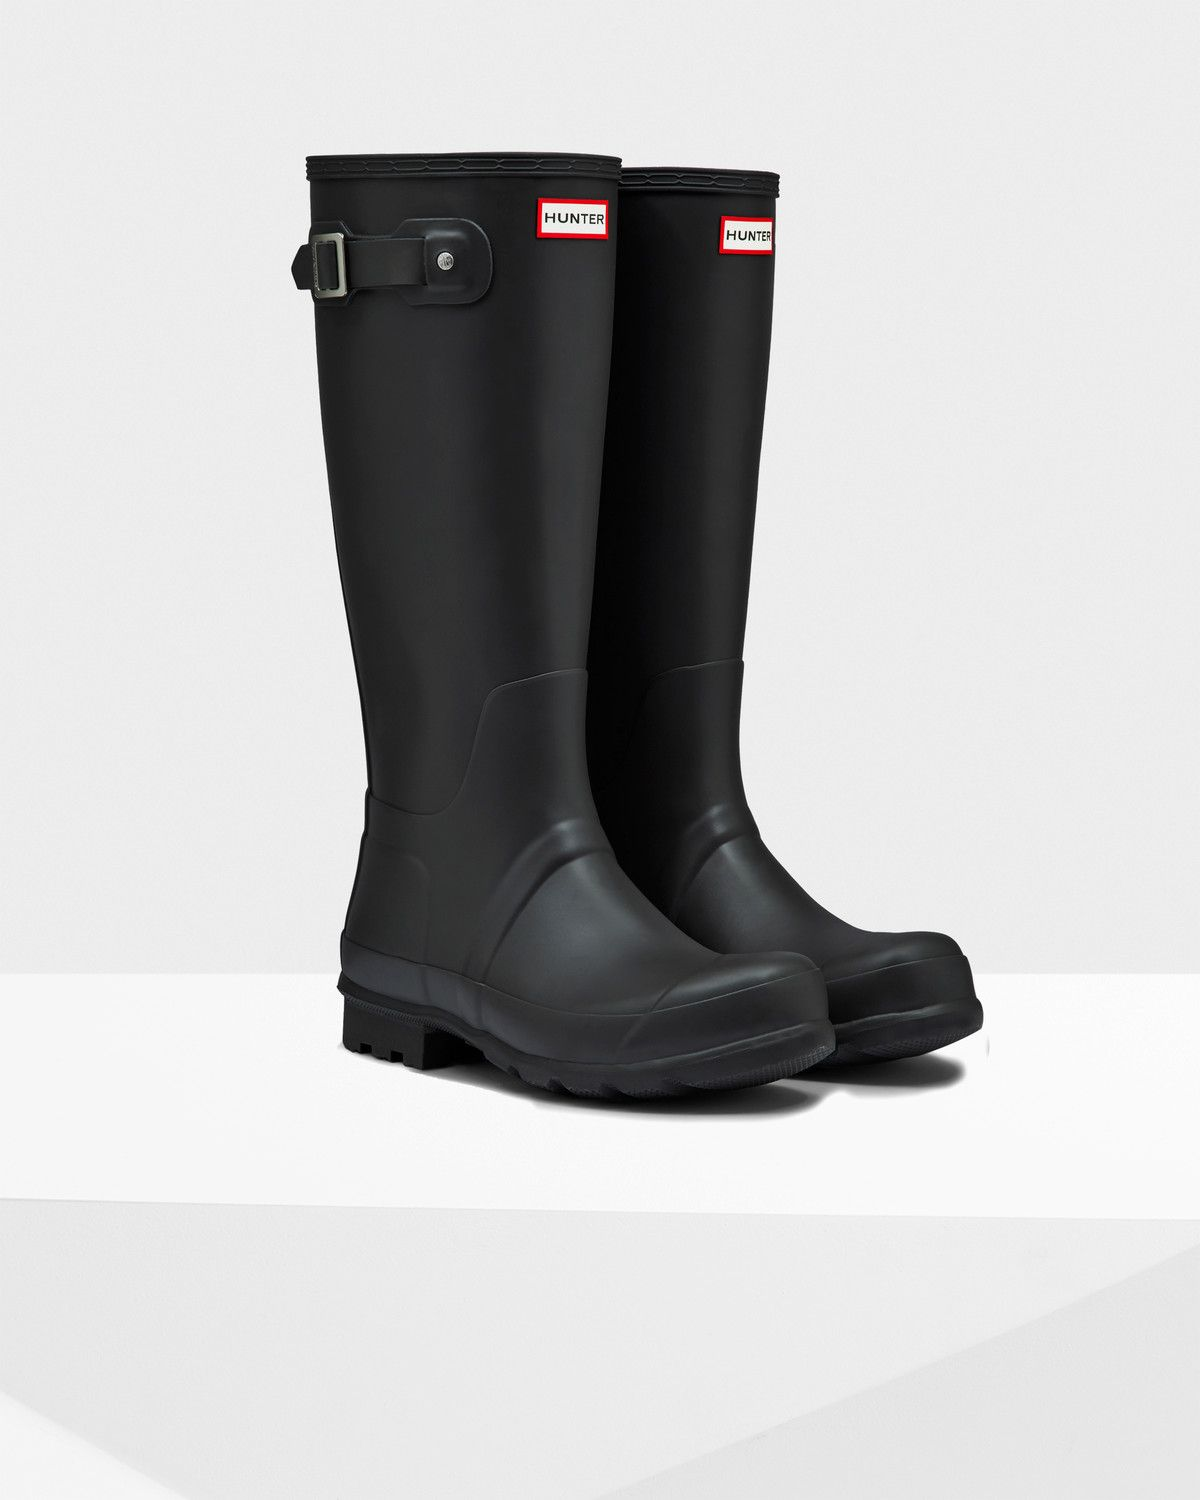 Mens Black Tall Rain Boots | Official US Hunter Boots Store